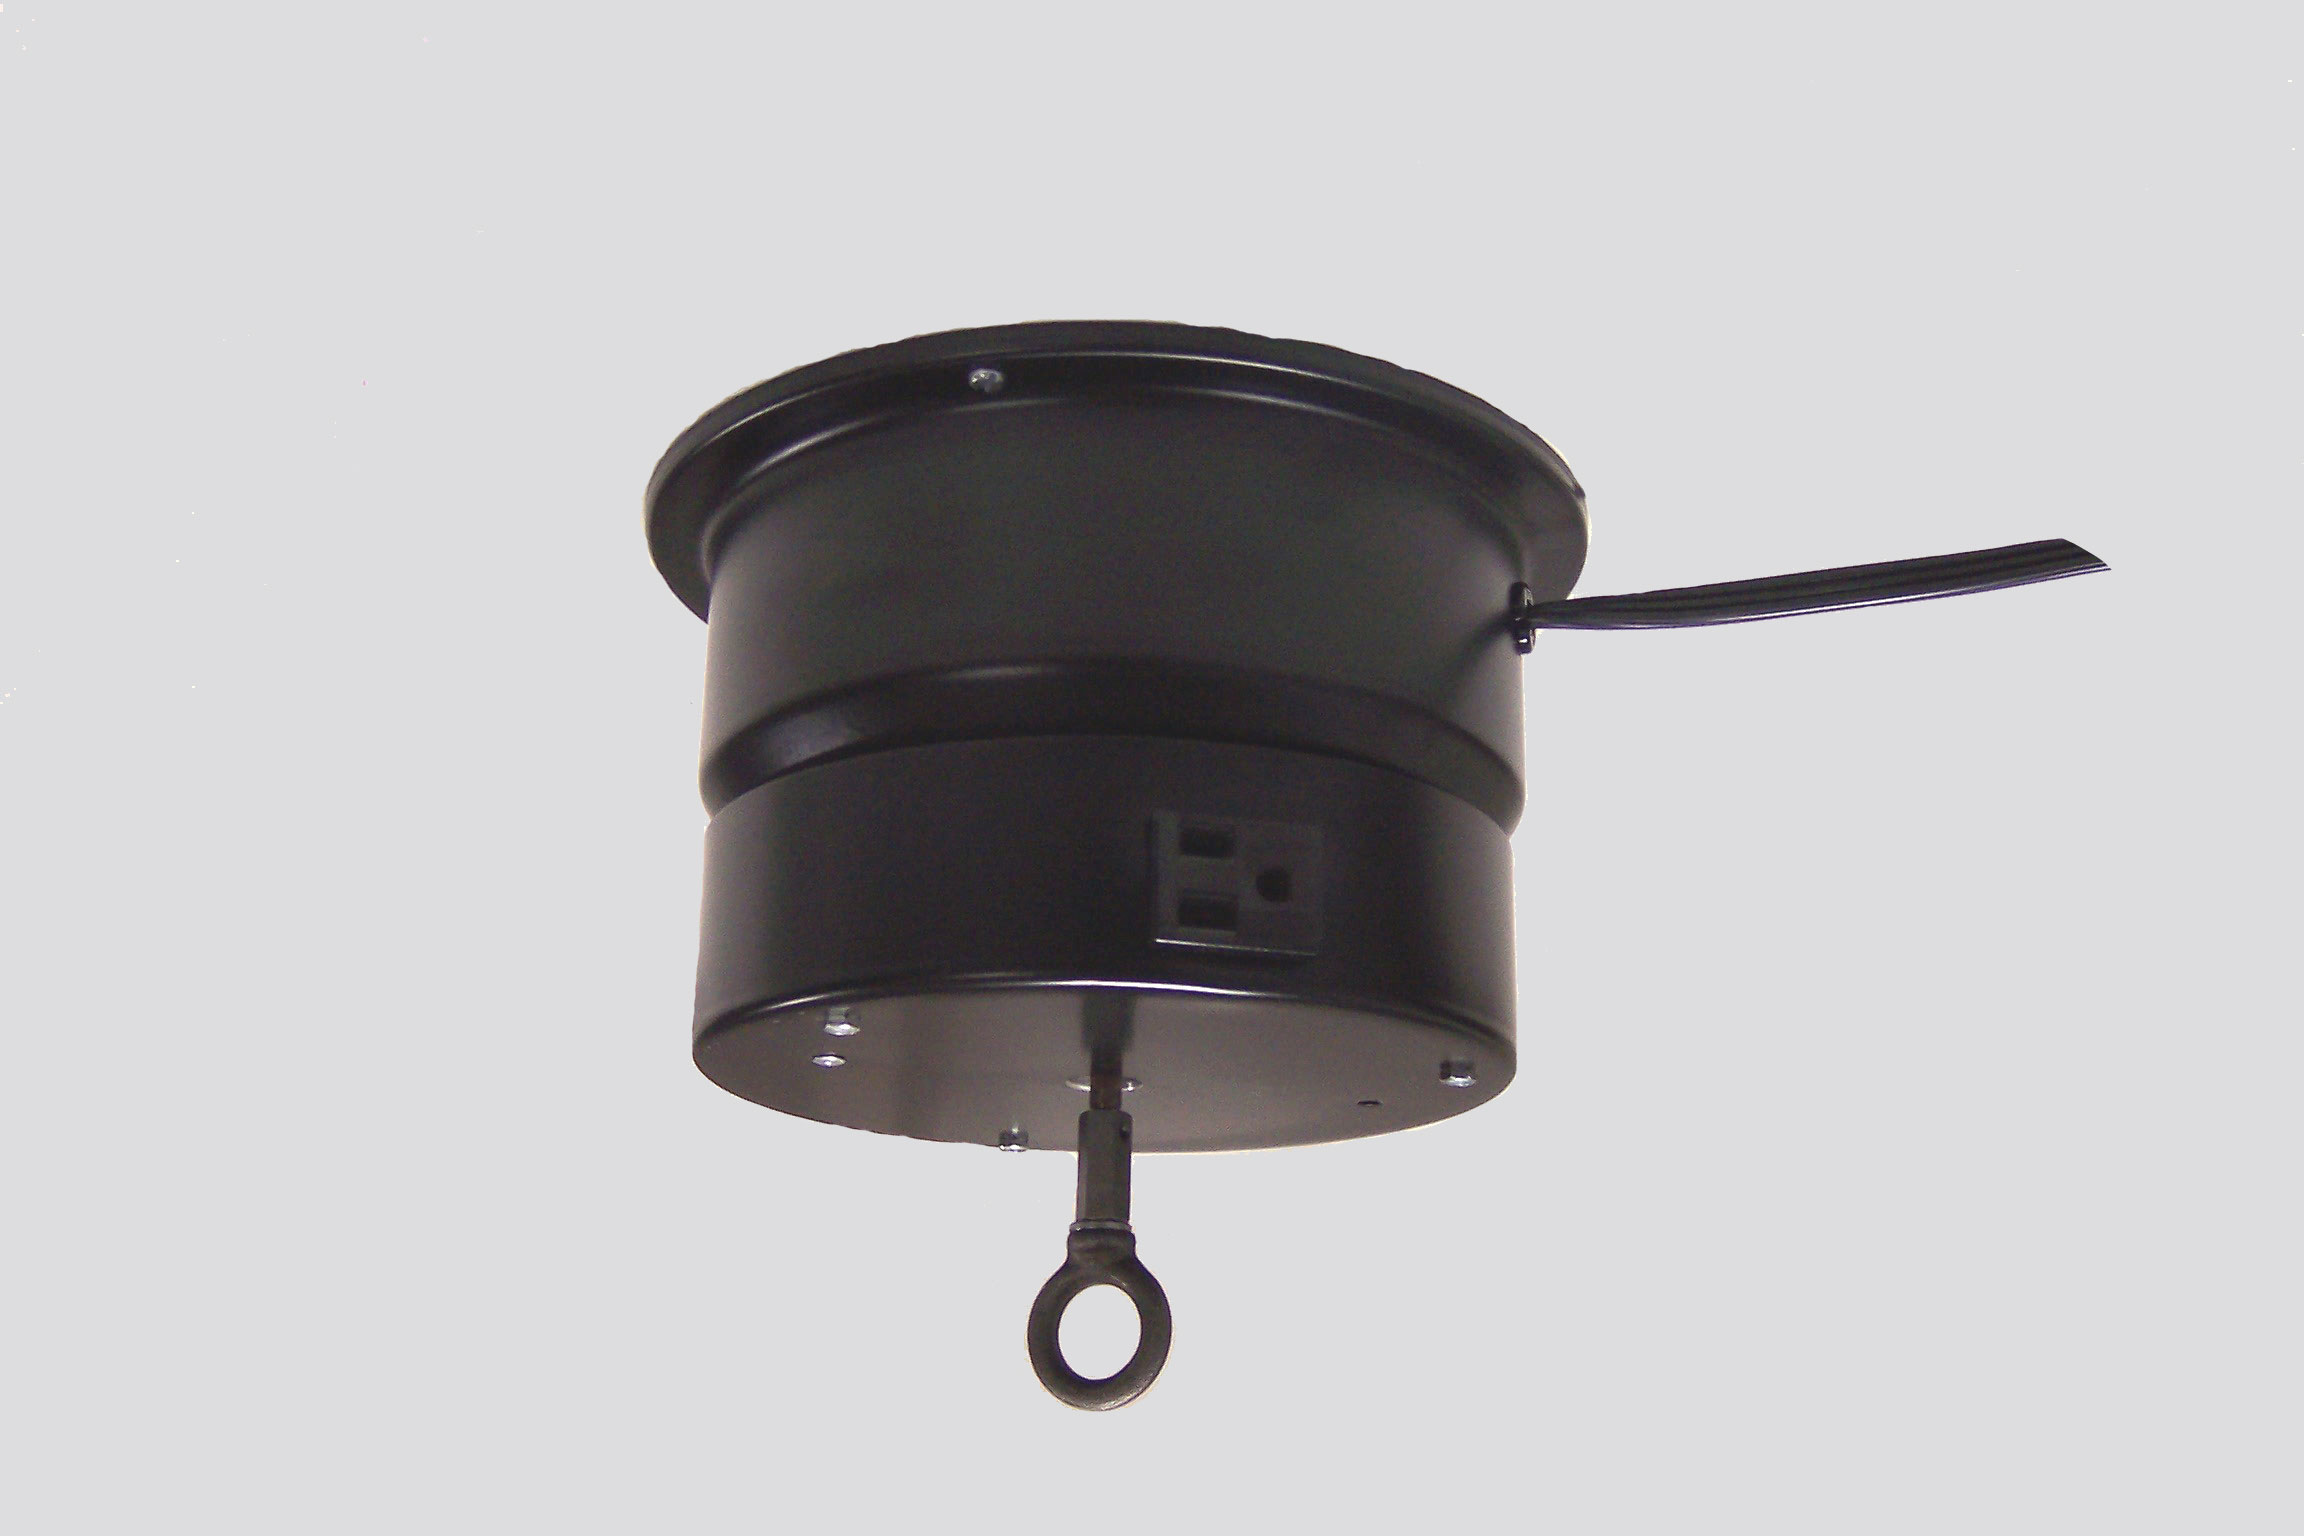 Ceiling Mount Turntable 110E